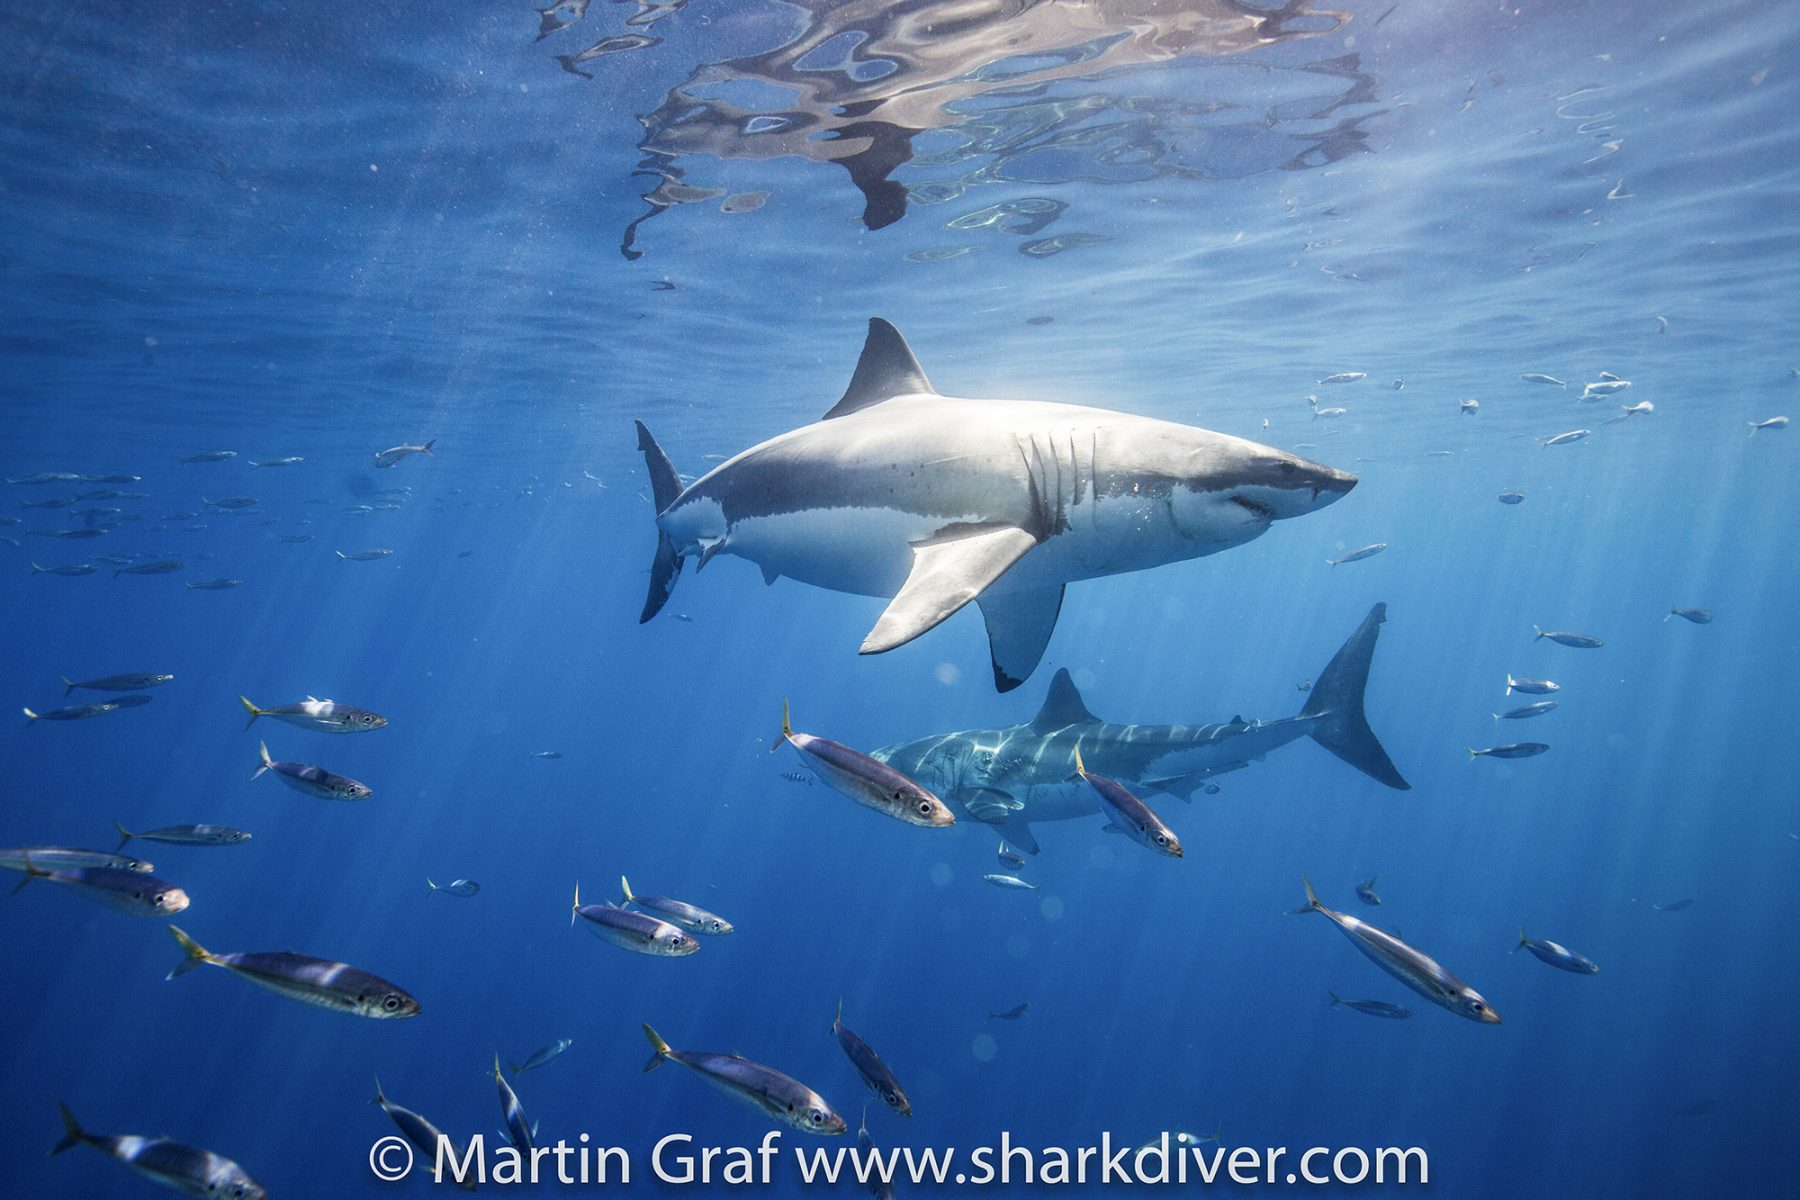 The Sharks Put On a Show at Guadalupe